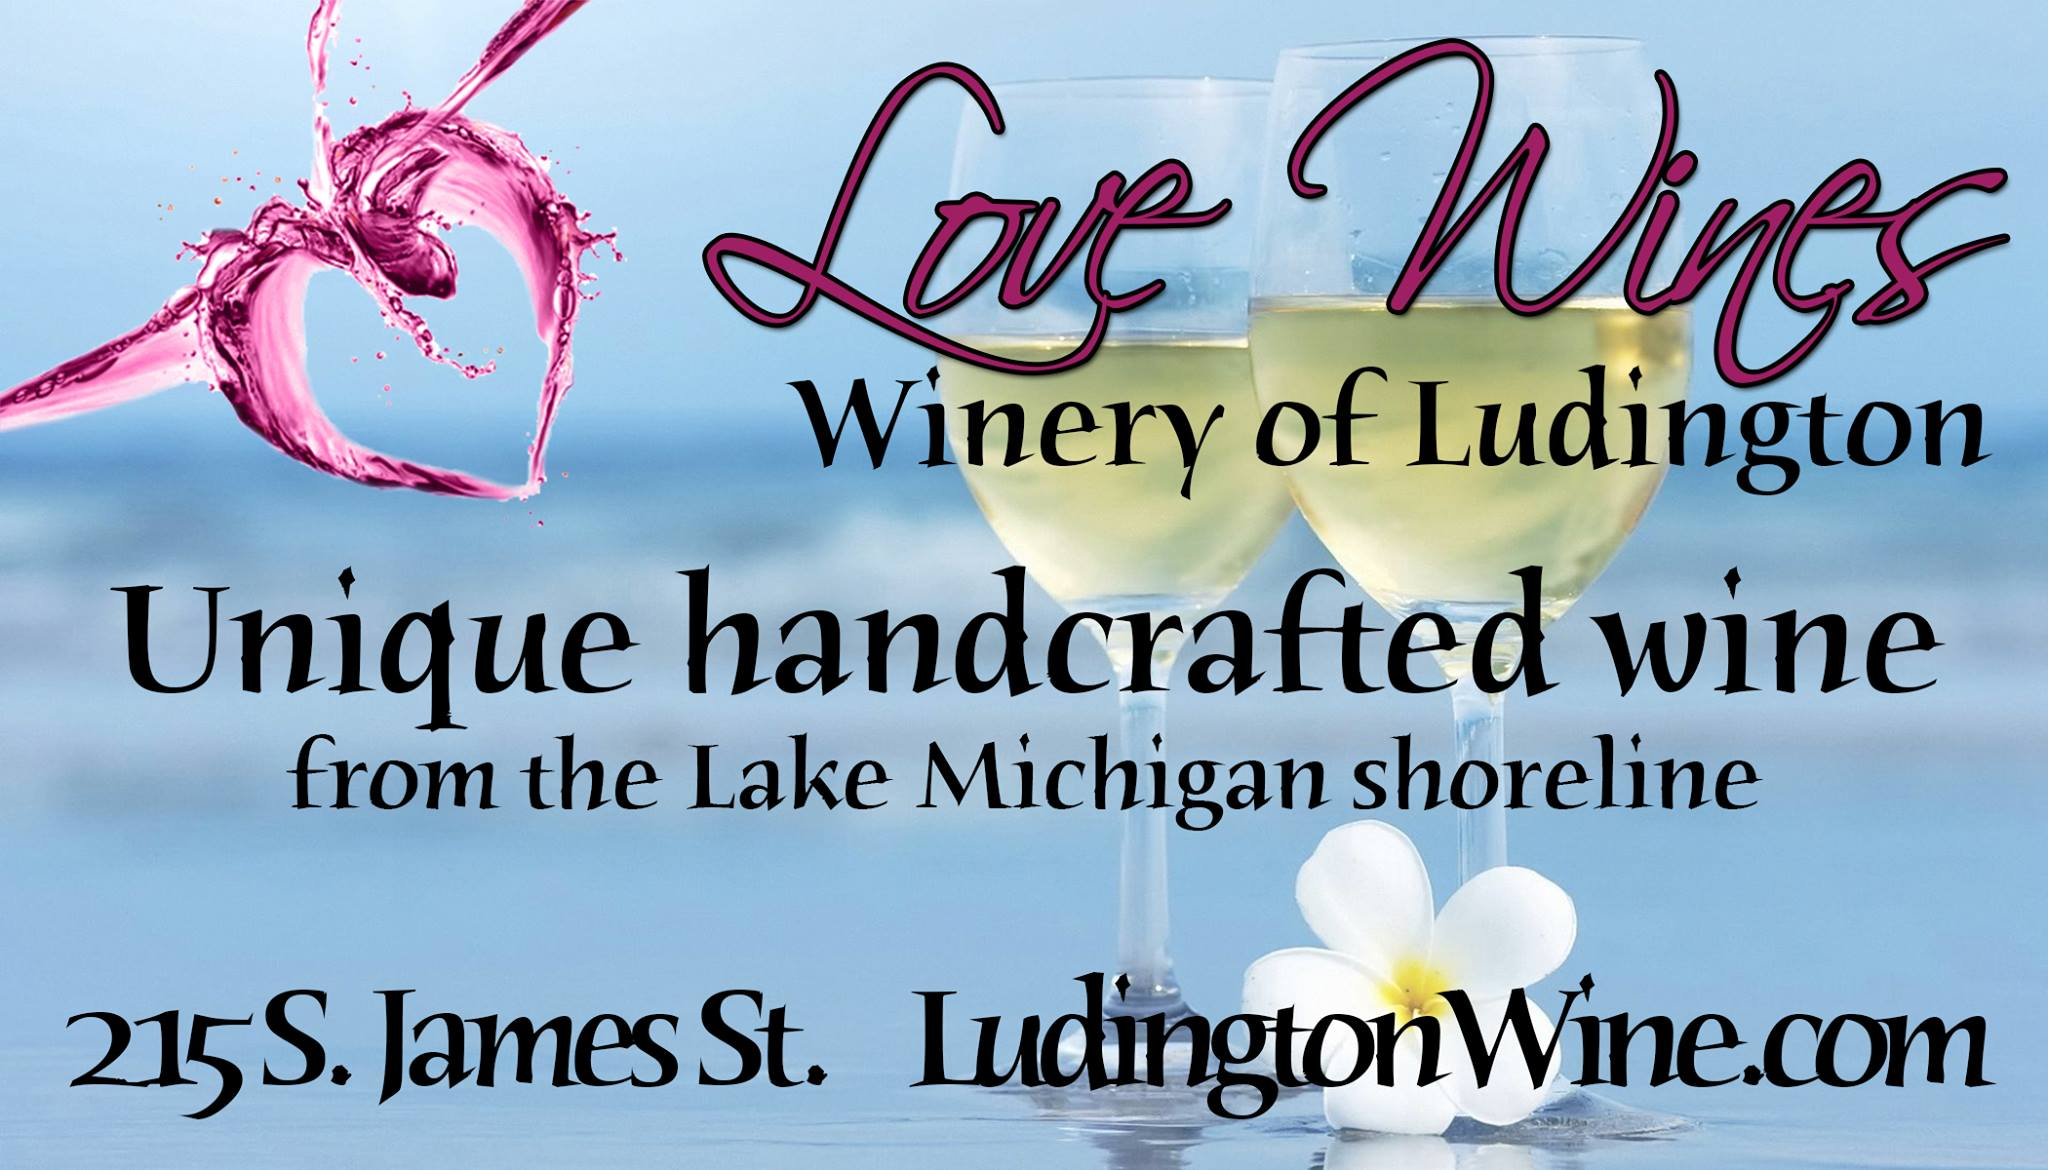 Love Wines Winery of Ludington